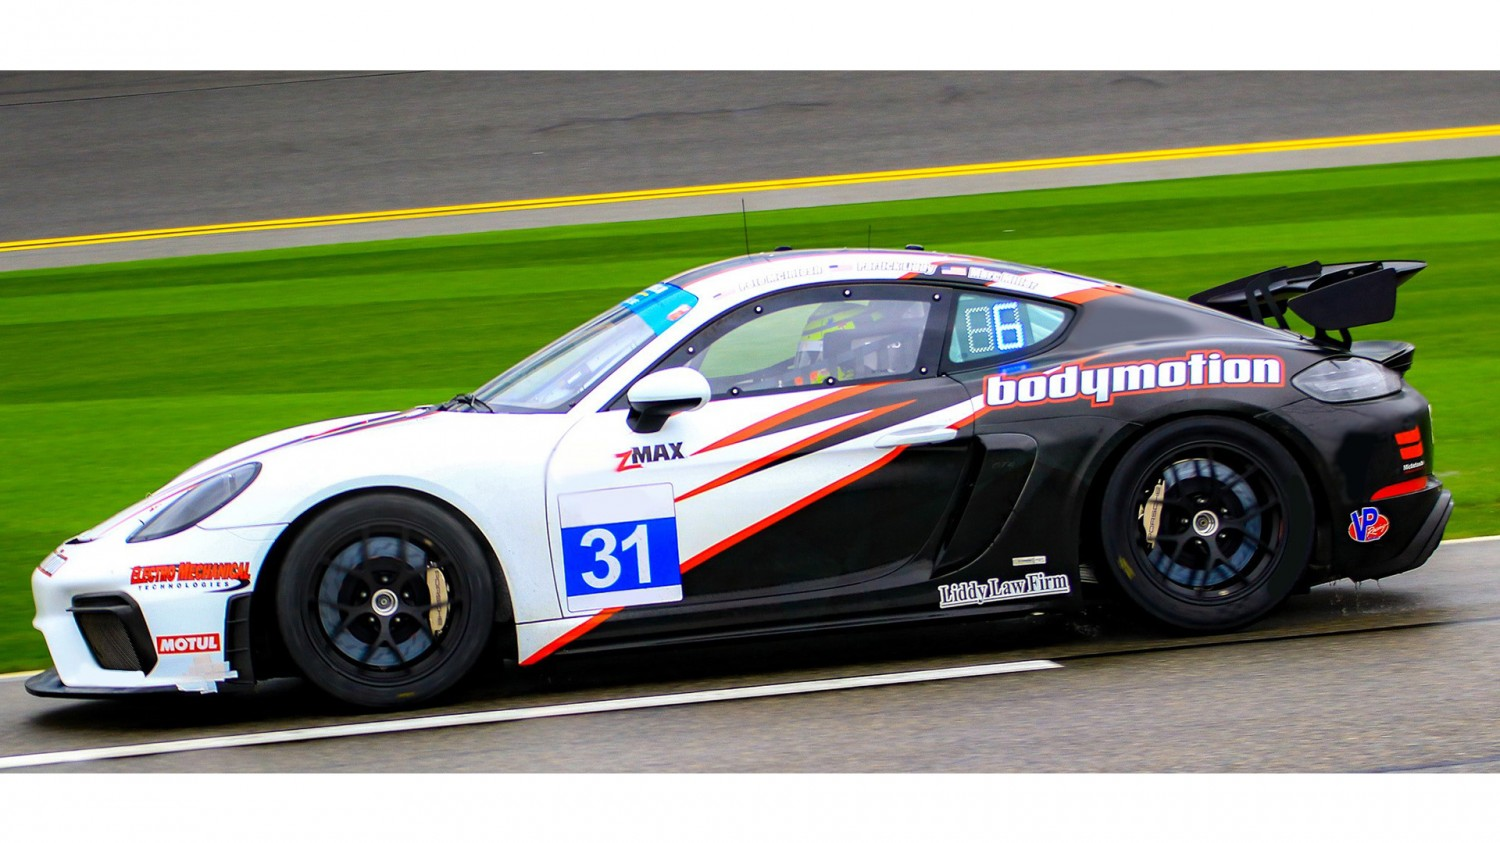 Bodymotion Racing Switches Gears to Expand Program into SRO Pirelli GT4 America Competition